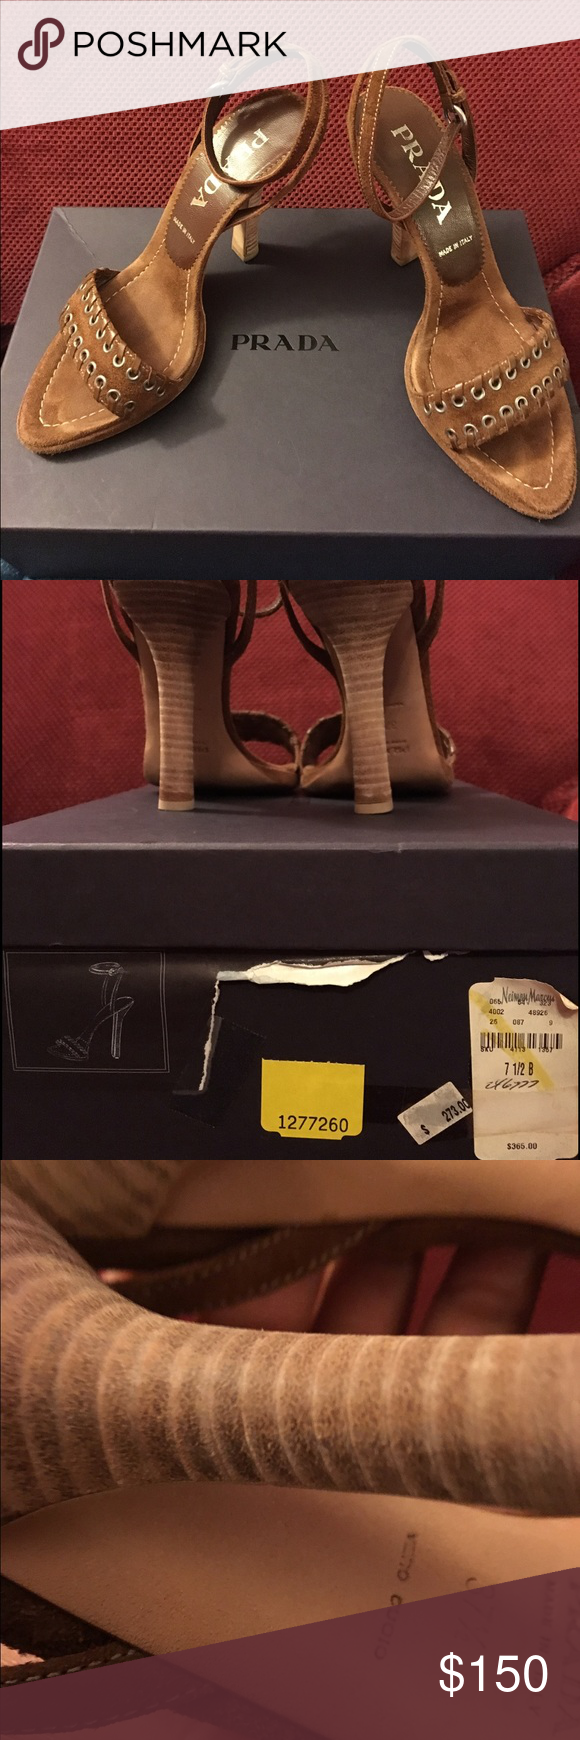 "Prada These are brown suede genuine PRADA high-heel sandals size 38 and fits 7.5 (these ran small). This have 4"" stacked-wood heels and ankle strap; wore these 3-4 times and they are in excellent condition. Original box is included price is firm Prada Shoes Sandals"